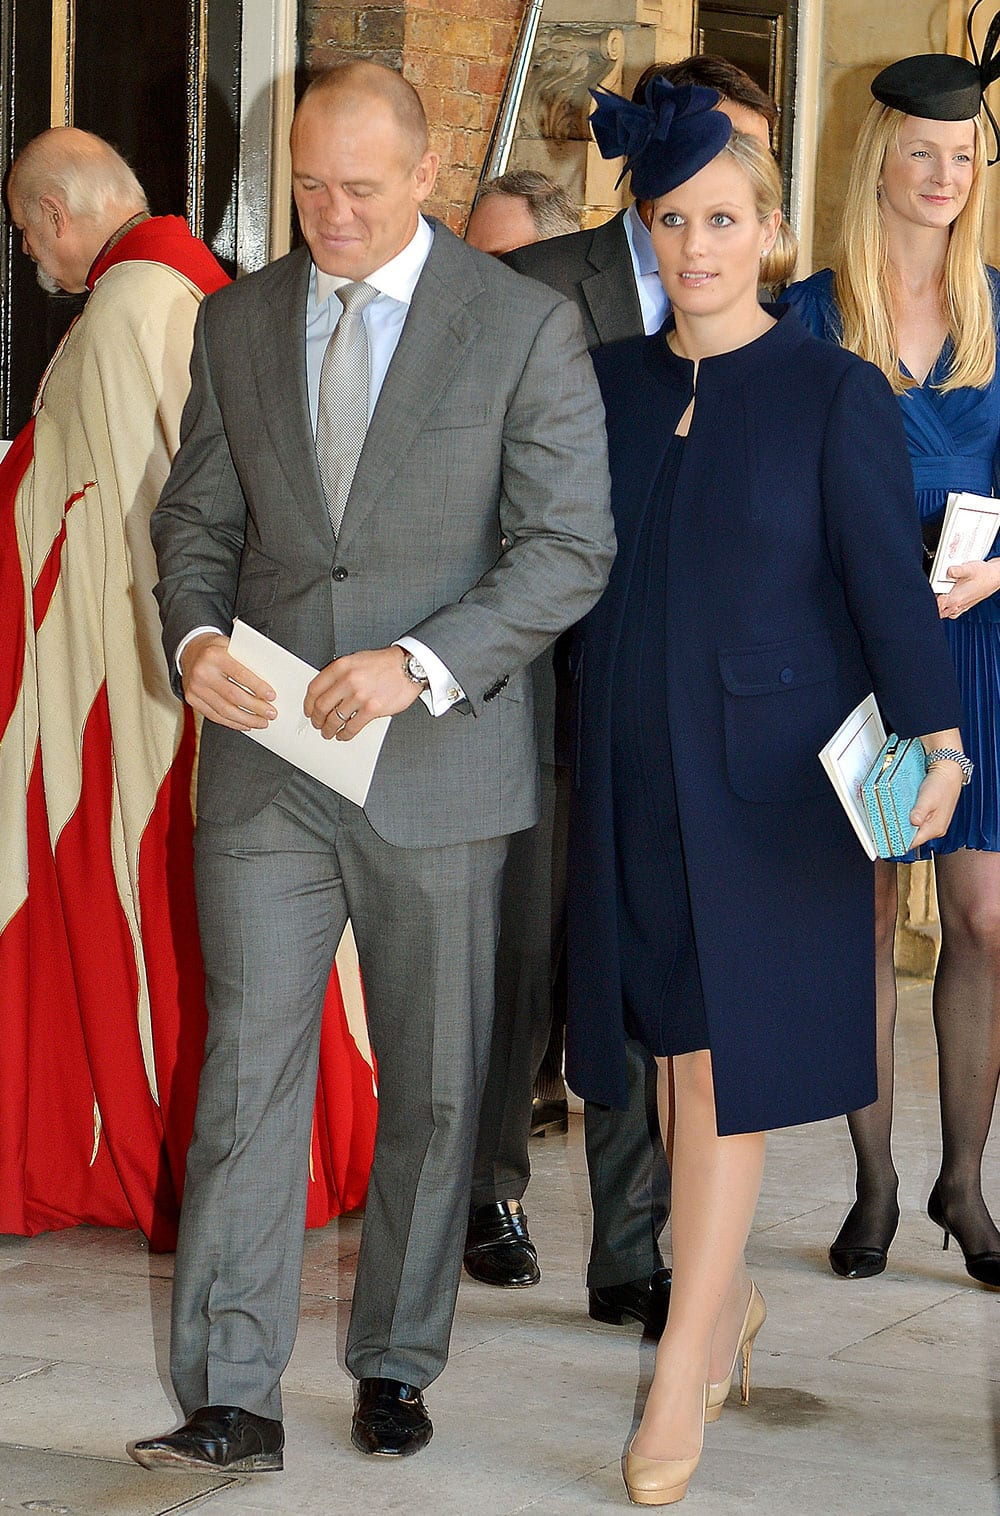 Mike and Zara Tindall (nee Phillips) leave the Chapel Royal in St James`s Palace in central London, following the christening of Prince George, the son of Prince William and his wife Kate, by the Archbishop of Canterbury.